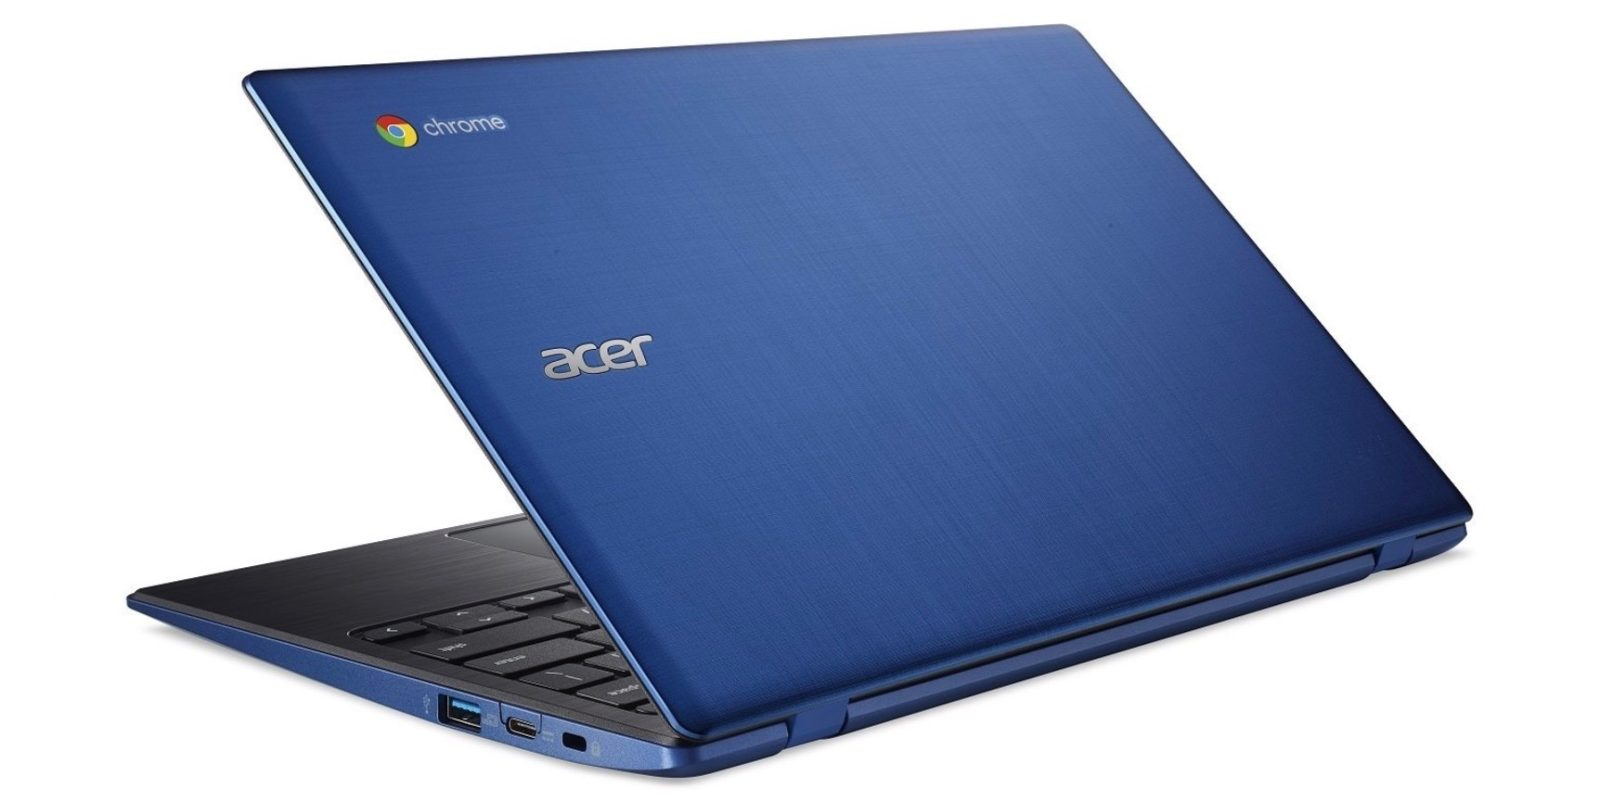 Acer's beautiful new $270 Chromebook 11 takes base level to